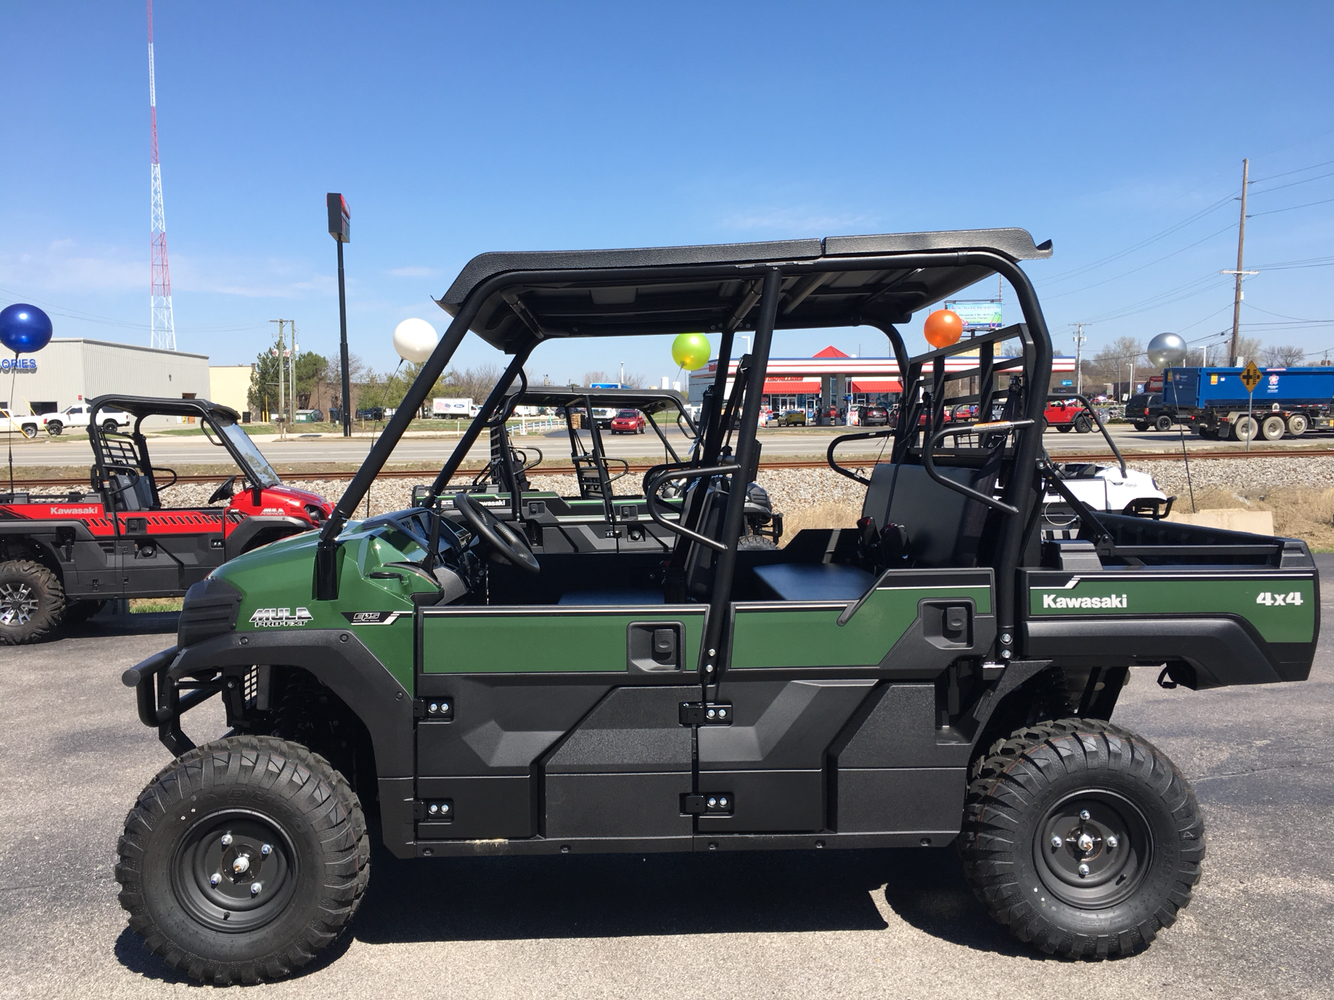 2019 Kawasaki Mule PRO-FXT EPS in Evansville, Indiana - Photo 2